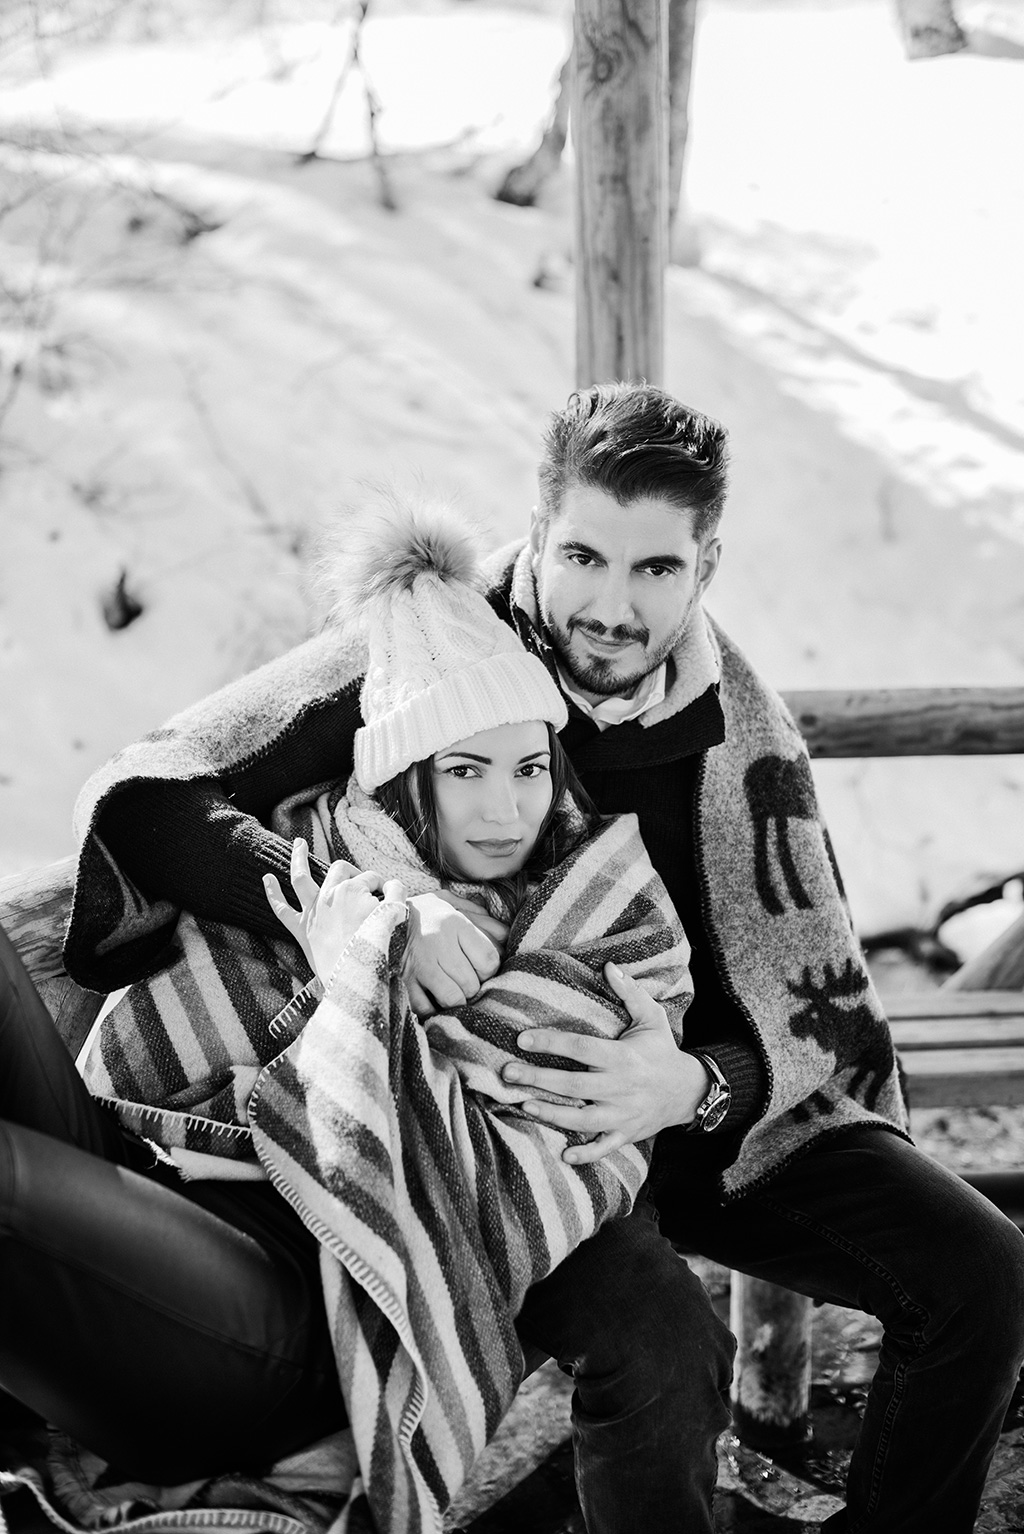 Black and white portrait during alpine engagement photoshoot, Prewedding φωτογράφιση στα χιόνια, μια υπέροχη, George Kostopoulos Fine Art Wedding Photography